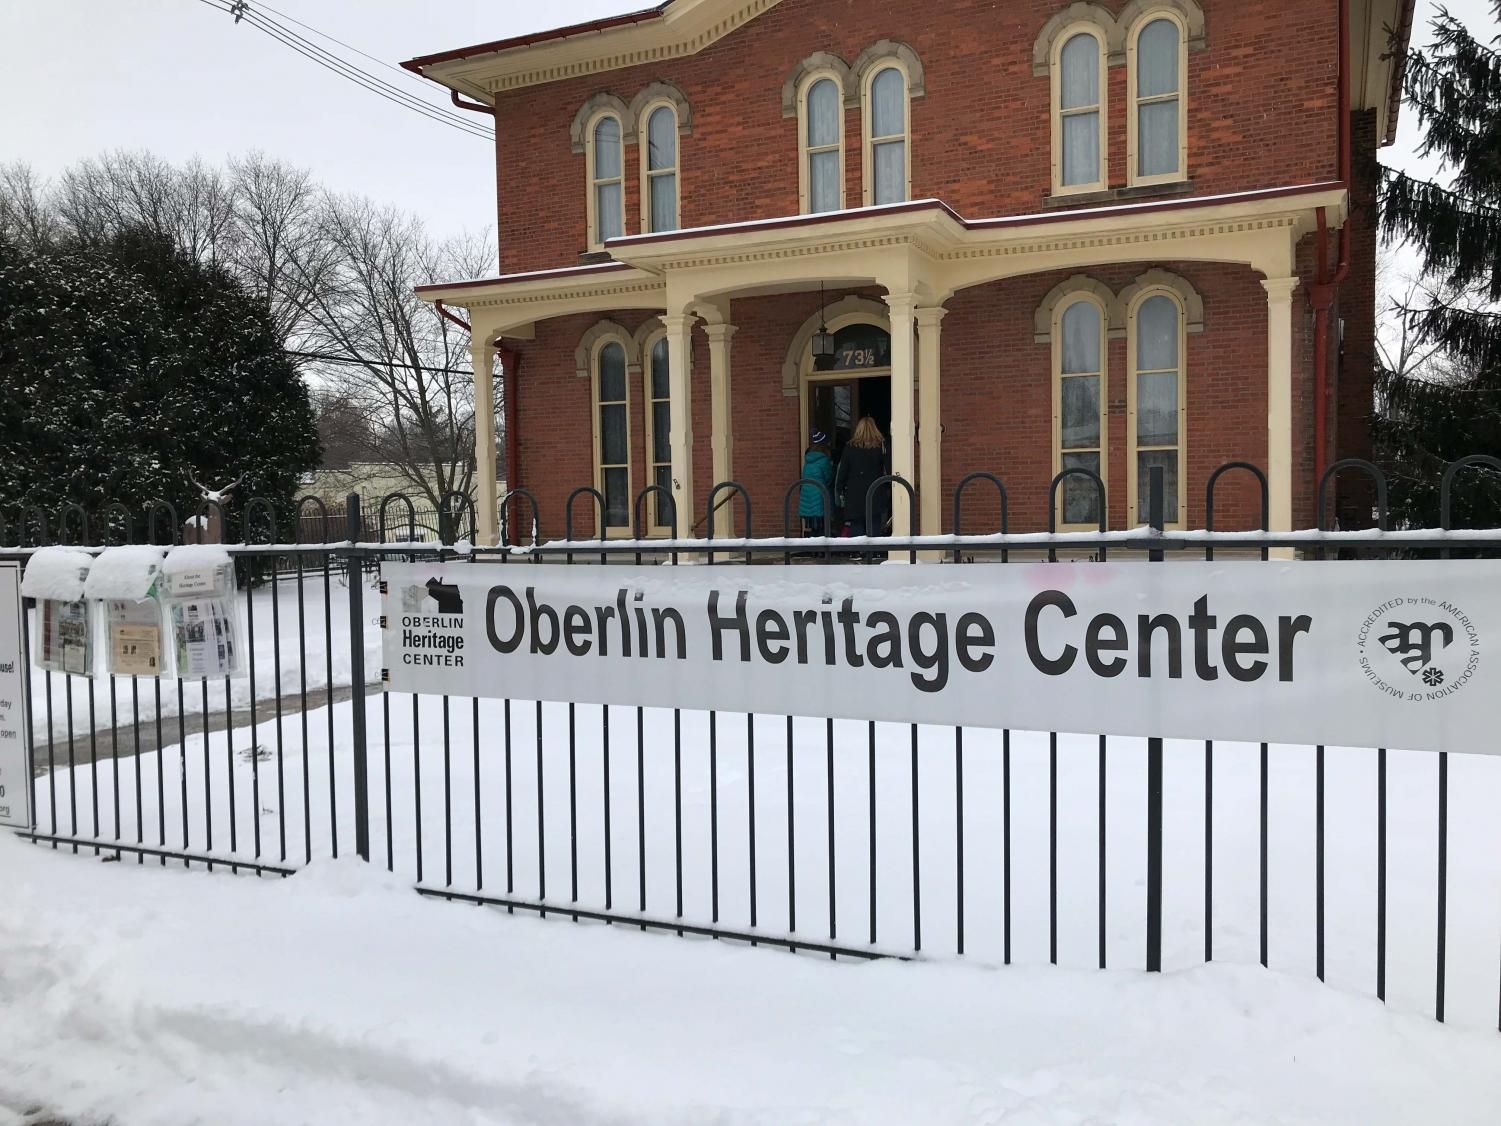 Oberlin Heritage Center, which is currently preparing a program to celebrate Black History Month by featuring a history of Black business owners in Oberlin.